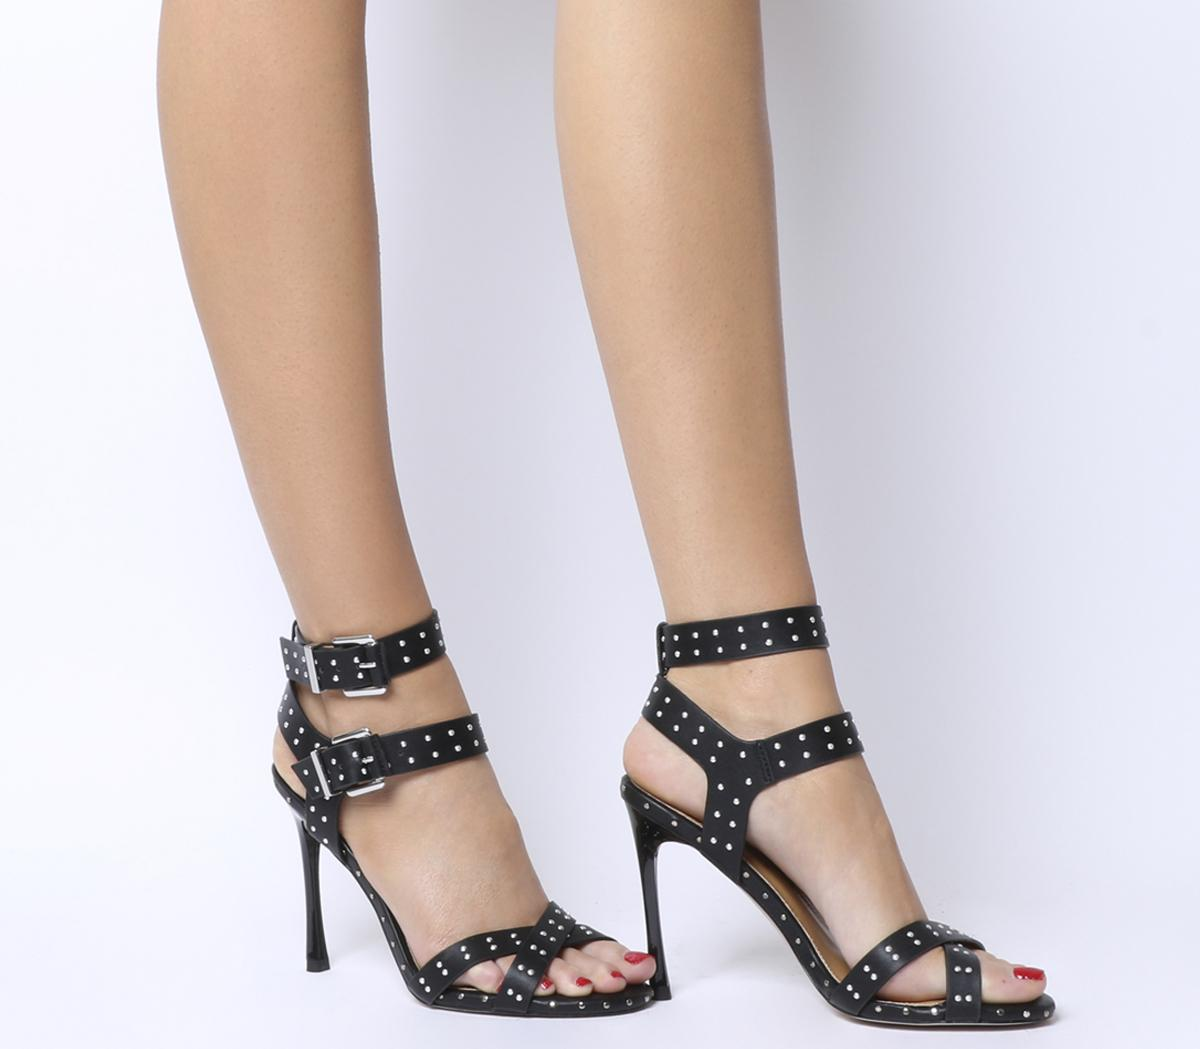 cadcff8503f Hardcore Studded Stiletto Heels. Double tap to zoom into the image. Office  ...